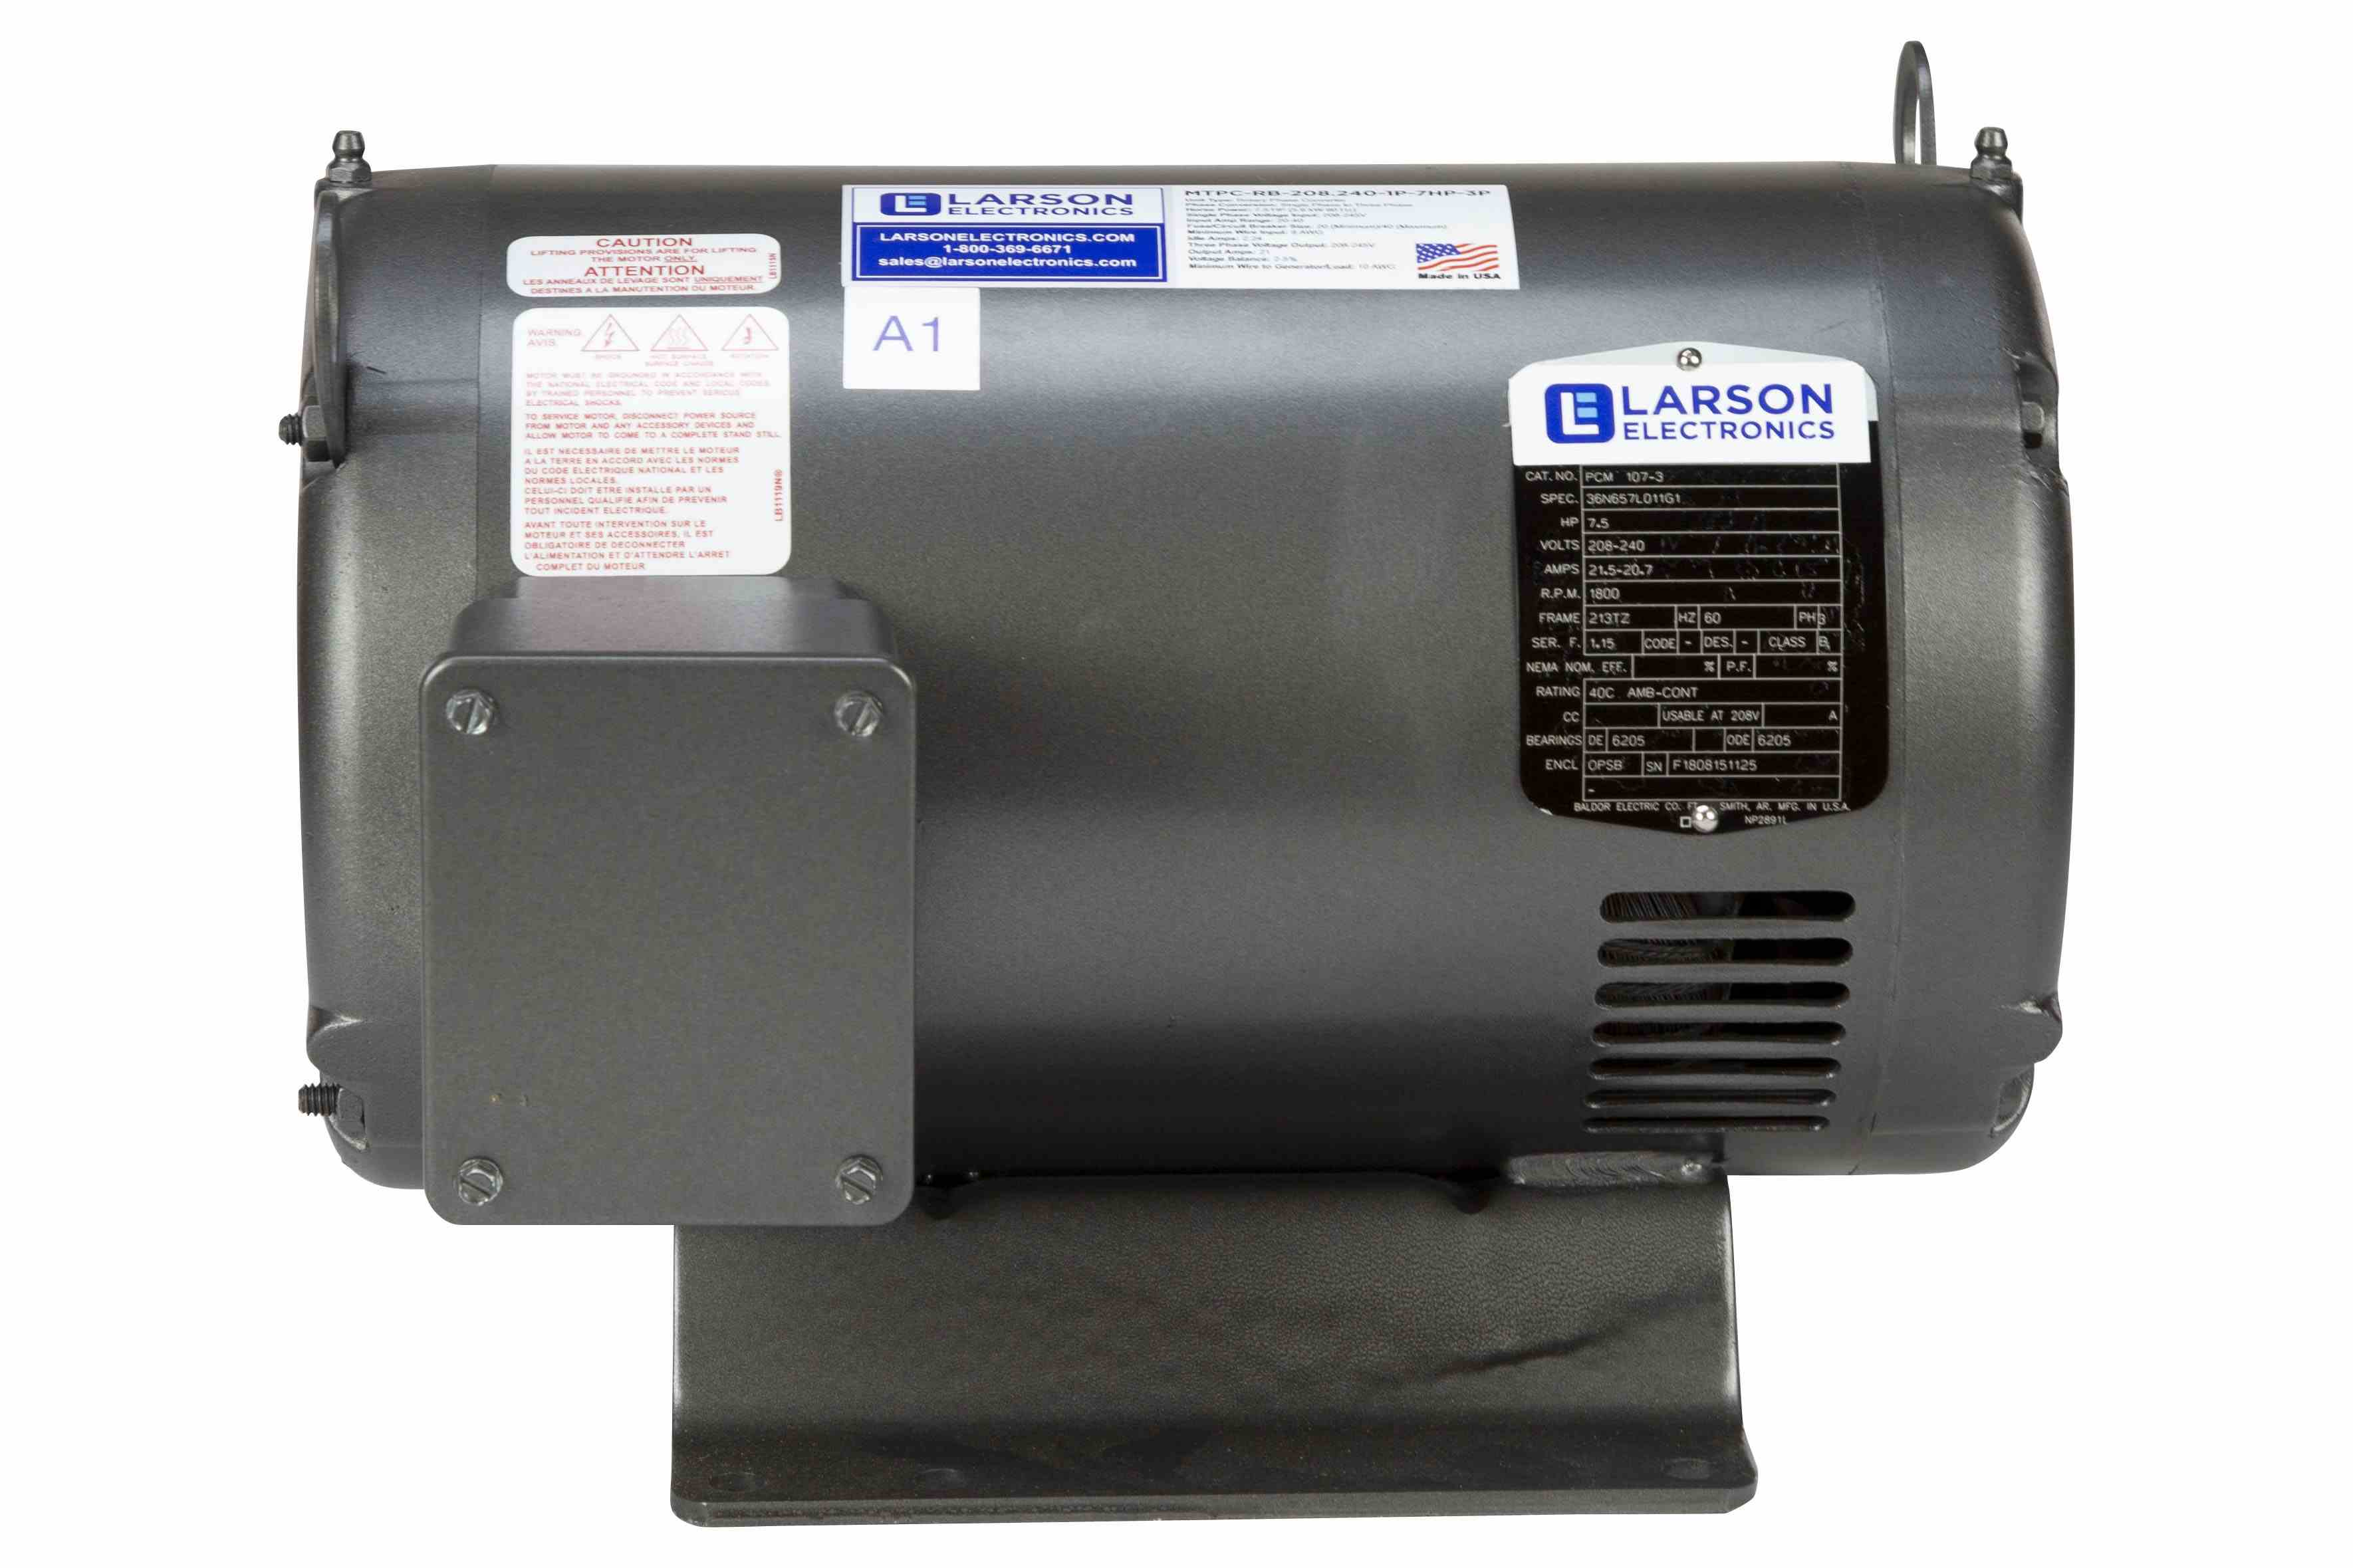 Rotary Phase Converter for 3HP Easy Loads, 230V 1PH to 3PH, 8.2 Amps Output, 5HP Idler, NEMA 1